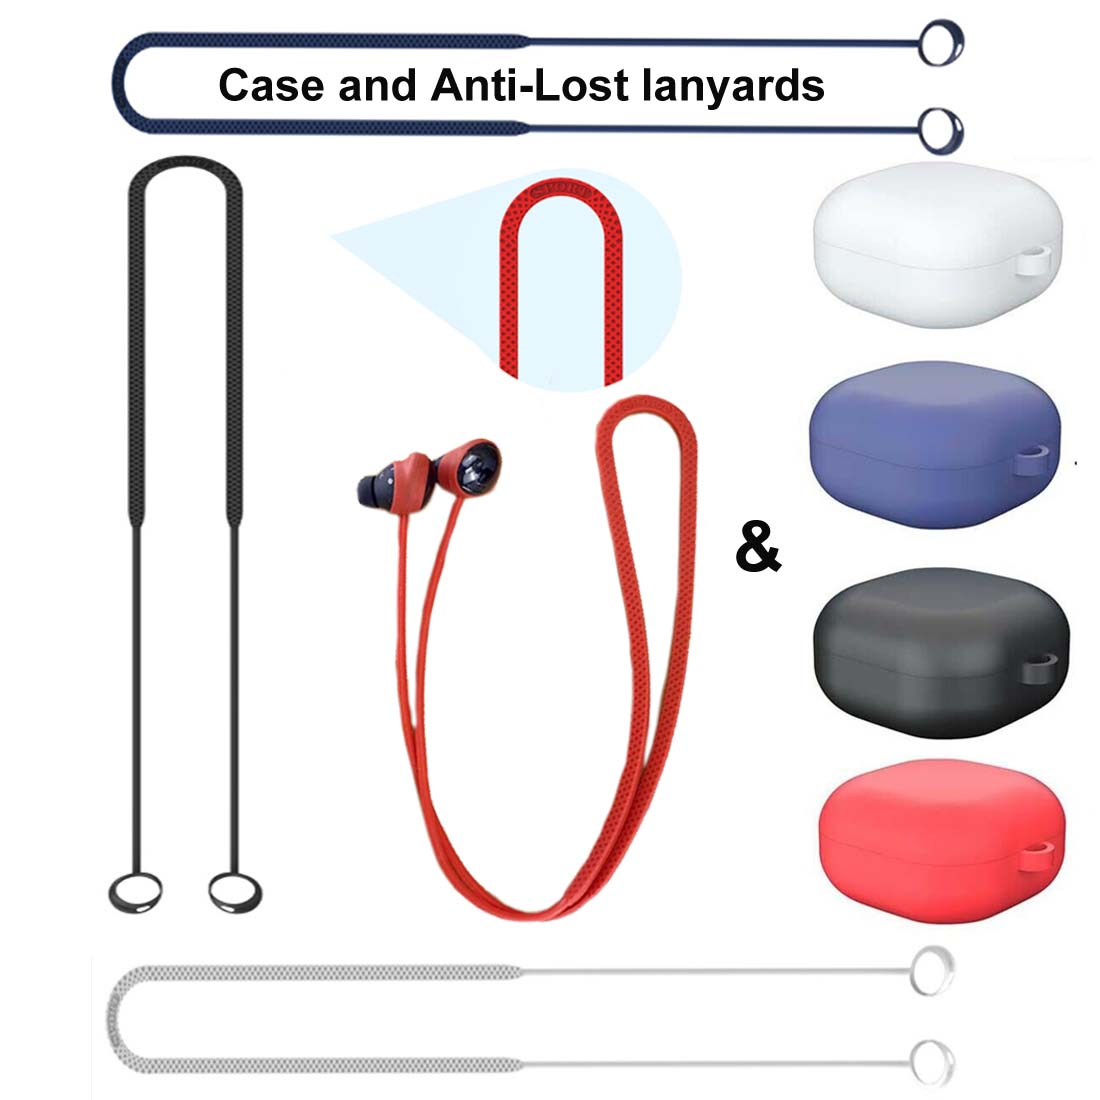 For Samsung Galaxy Buds Pro Silicone Case Cover & Anti-Lost lanyards with Ear Tips Eartips